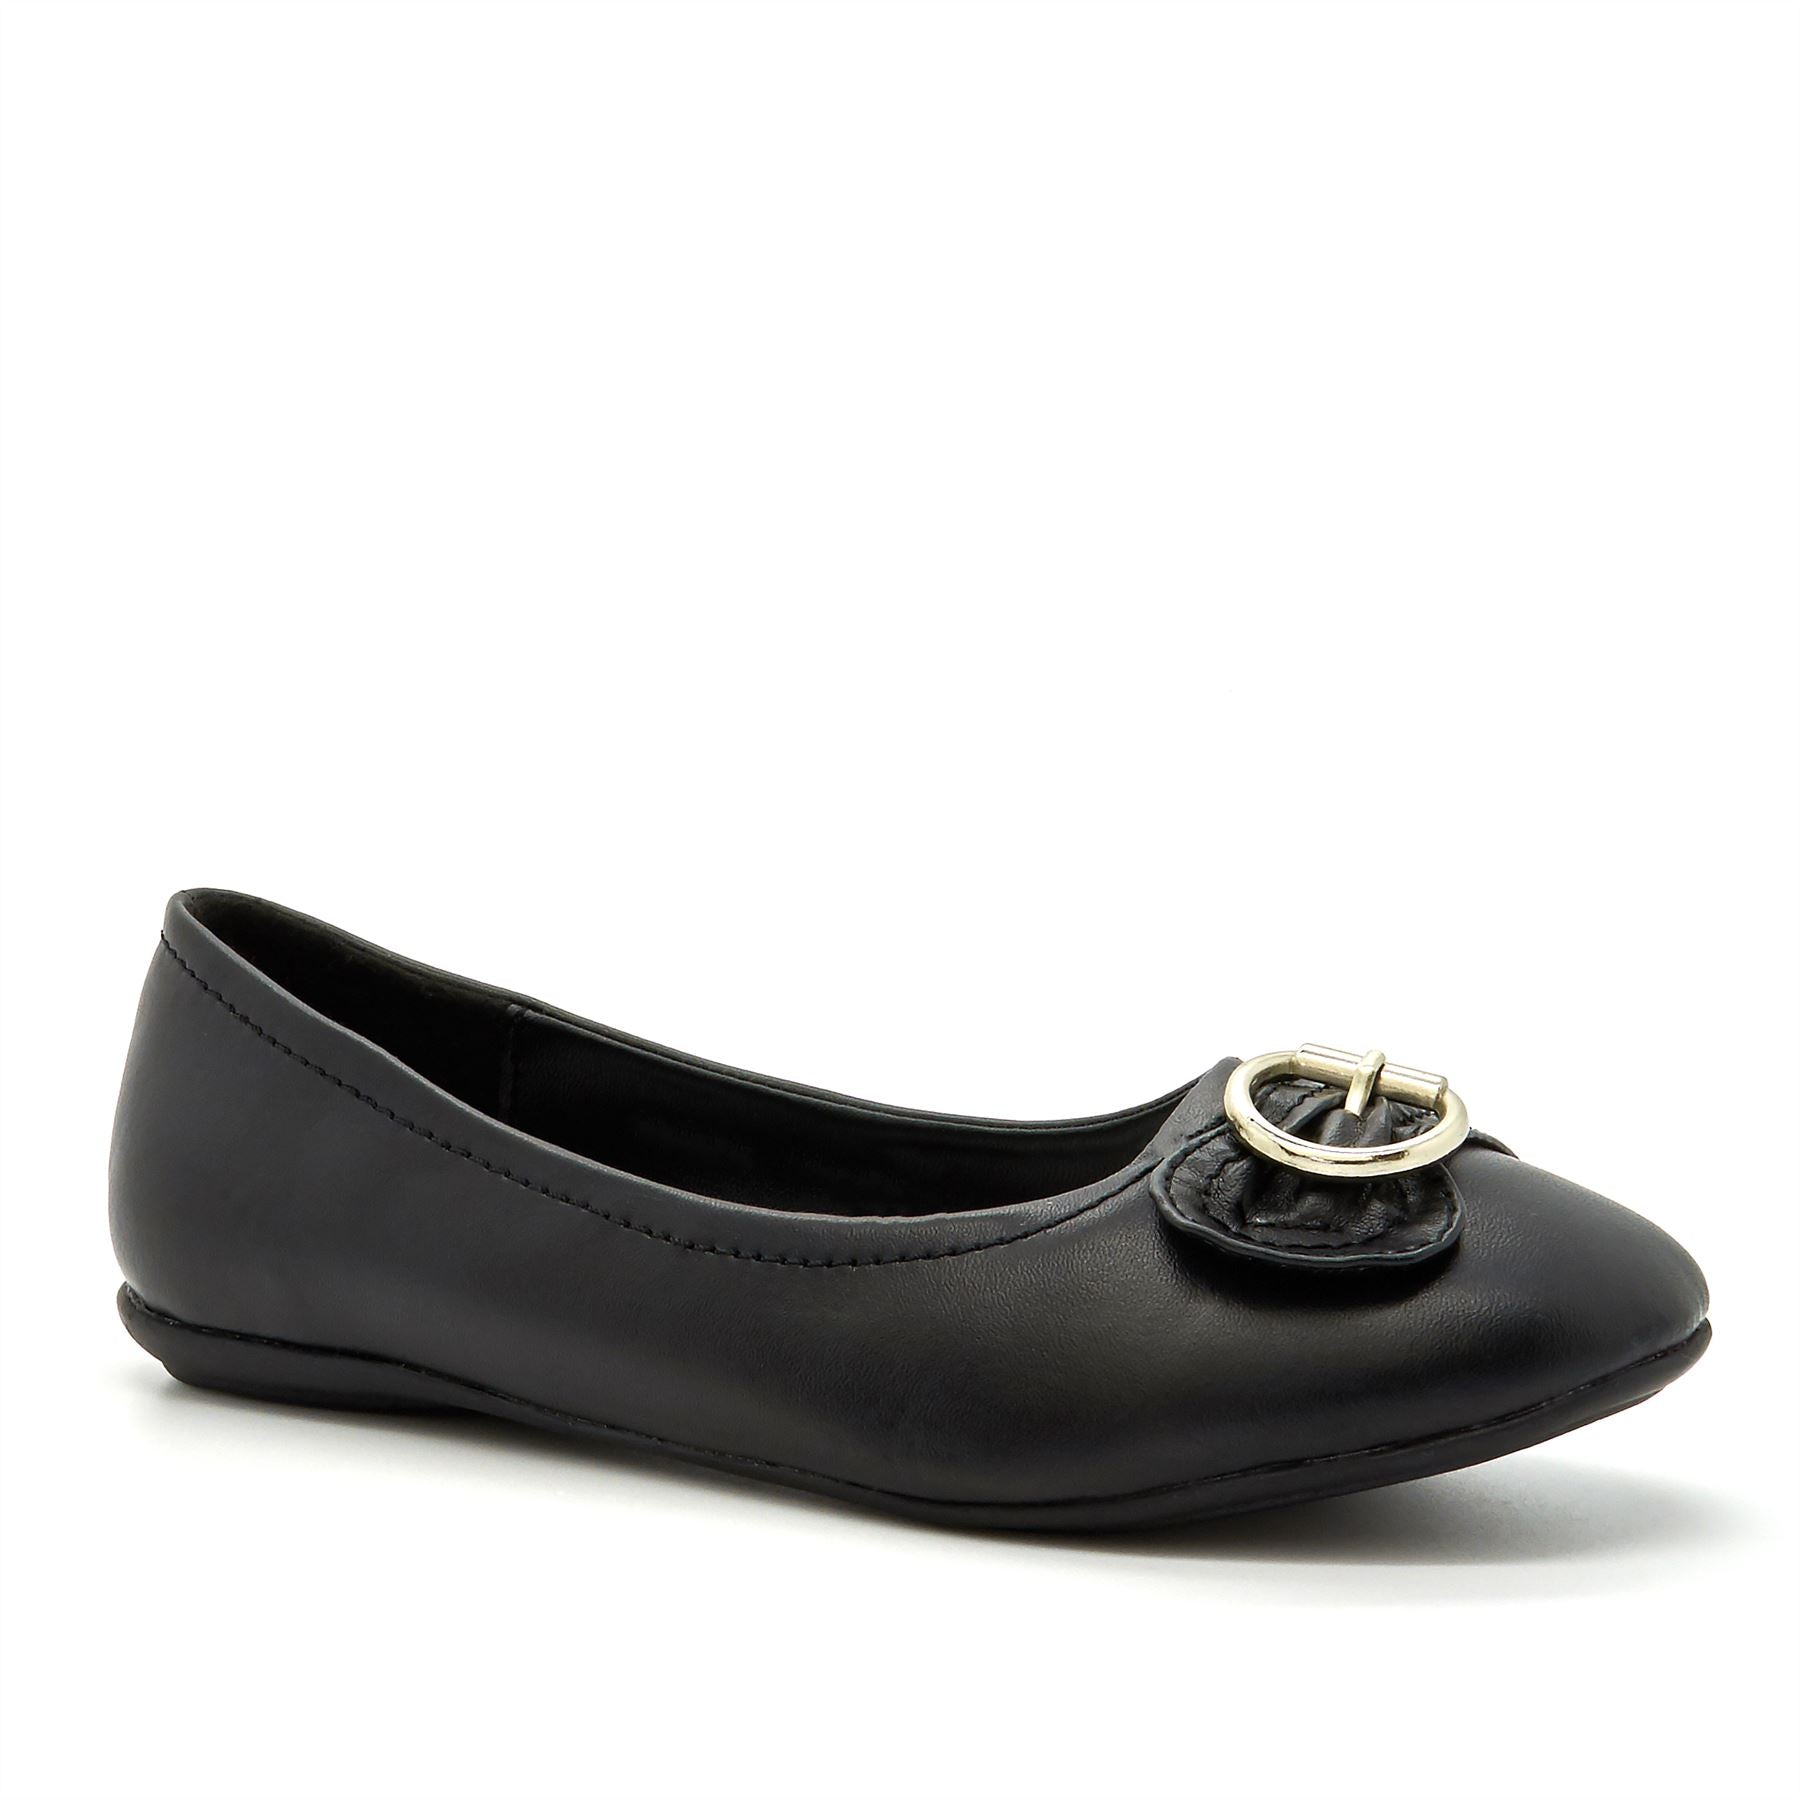 Black Buckle Detail Ballet Flats